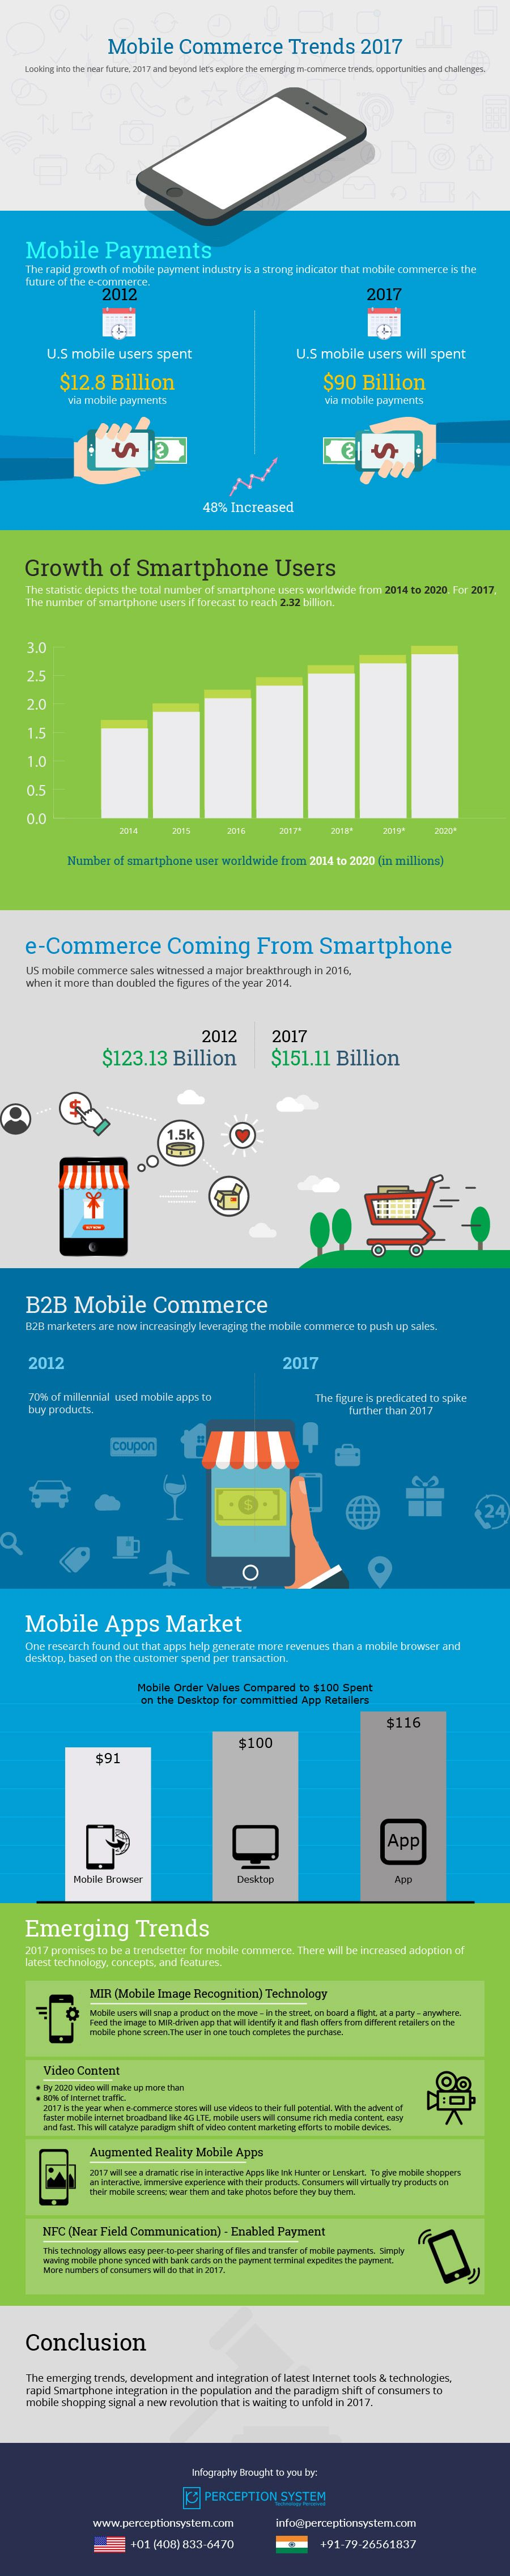 Top Mobile Commerce Trends of 2017